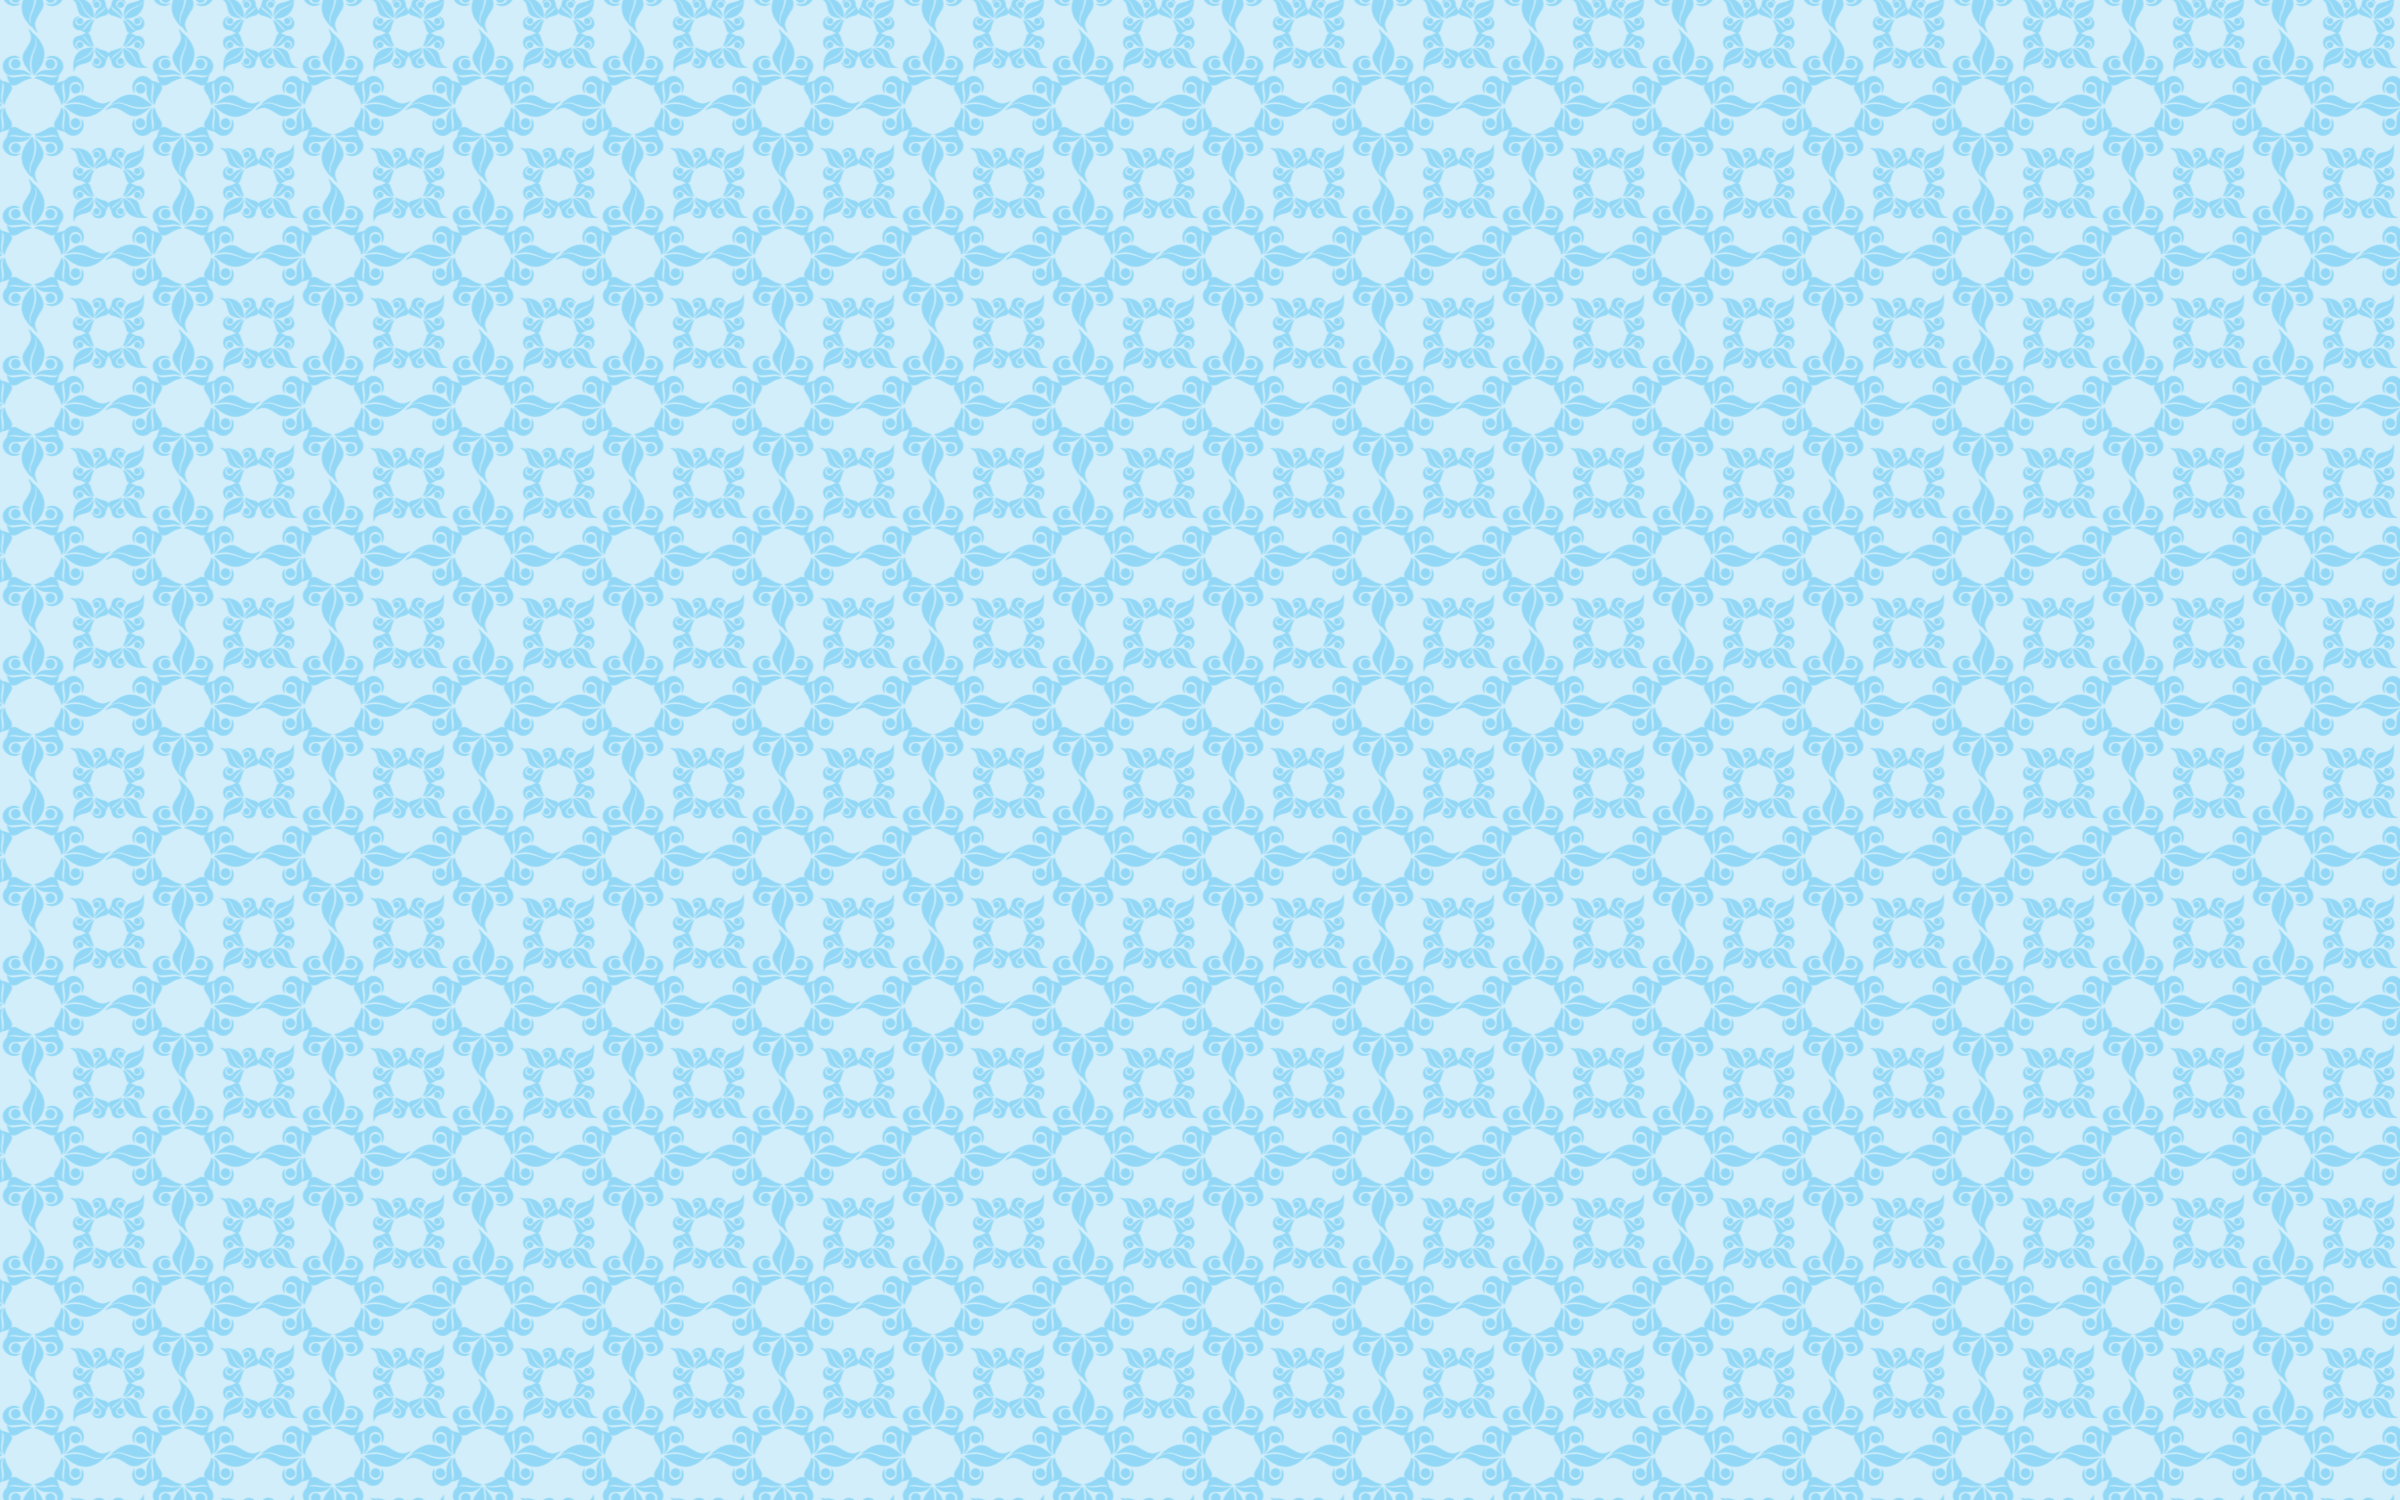 Seamless Geometric Pixabay Pattern 2 by GDJ